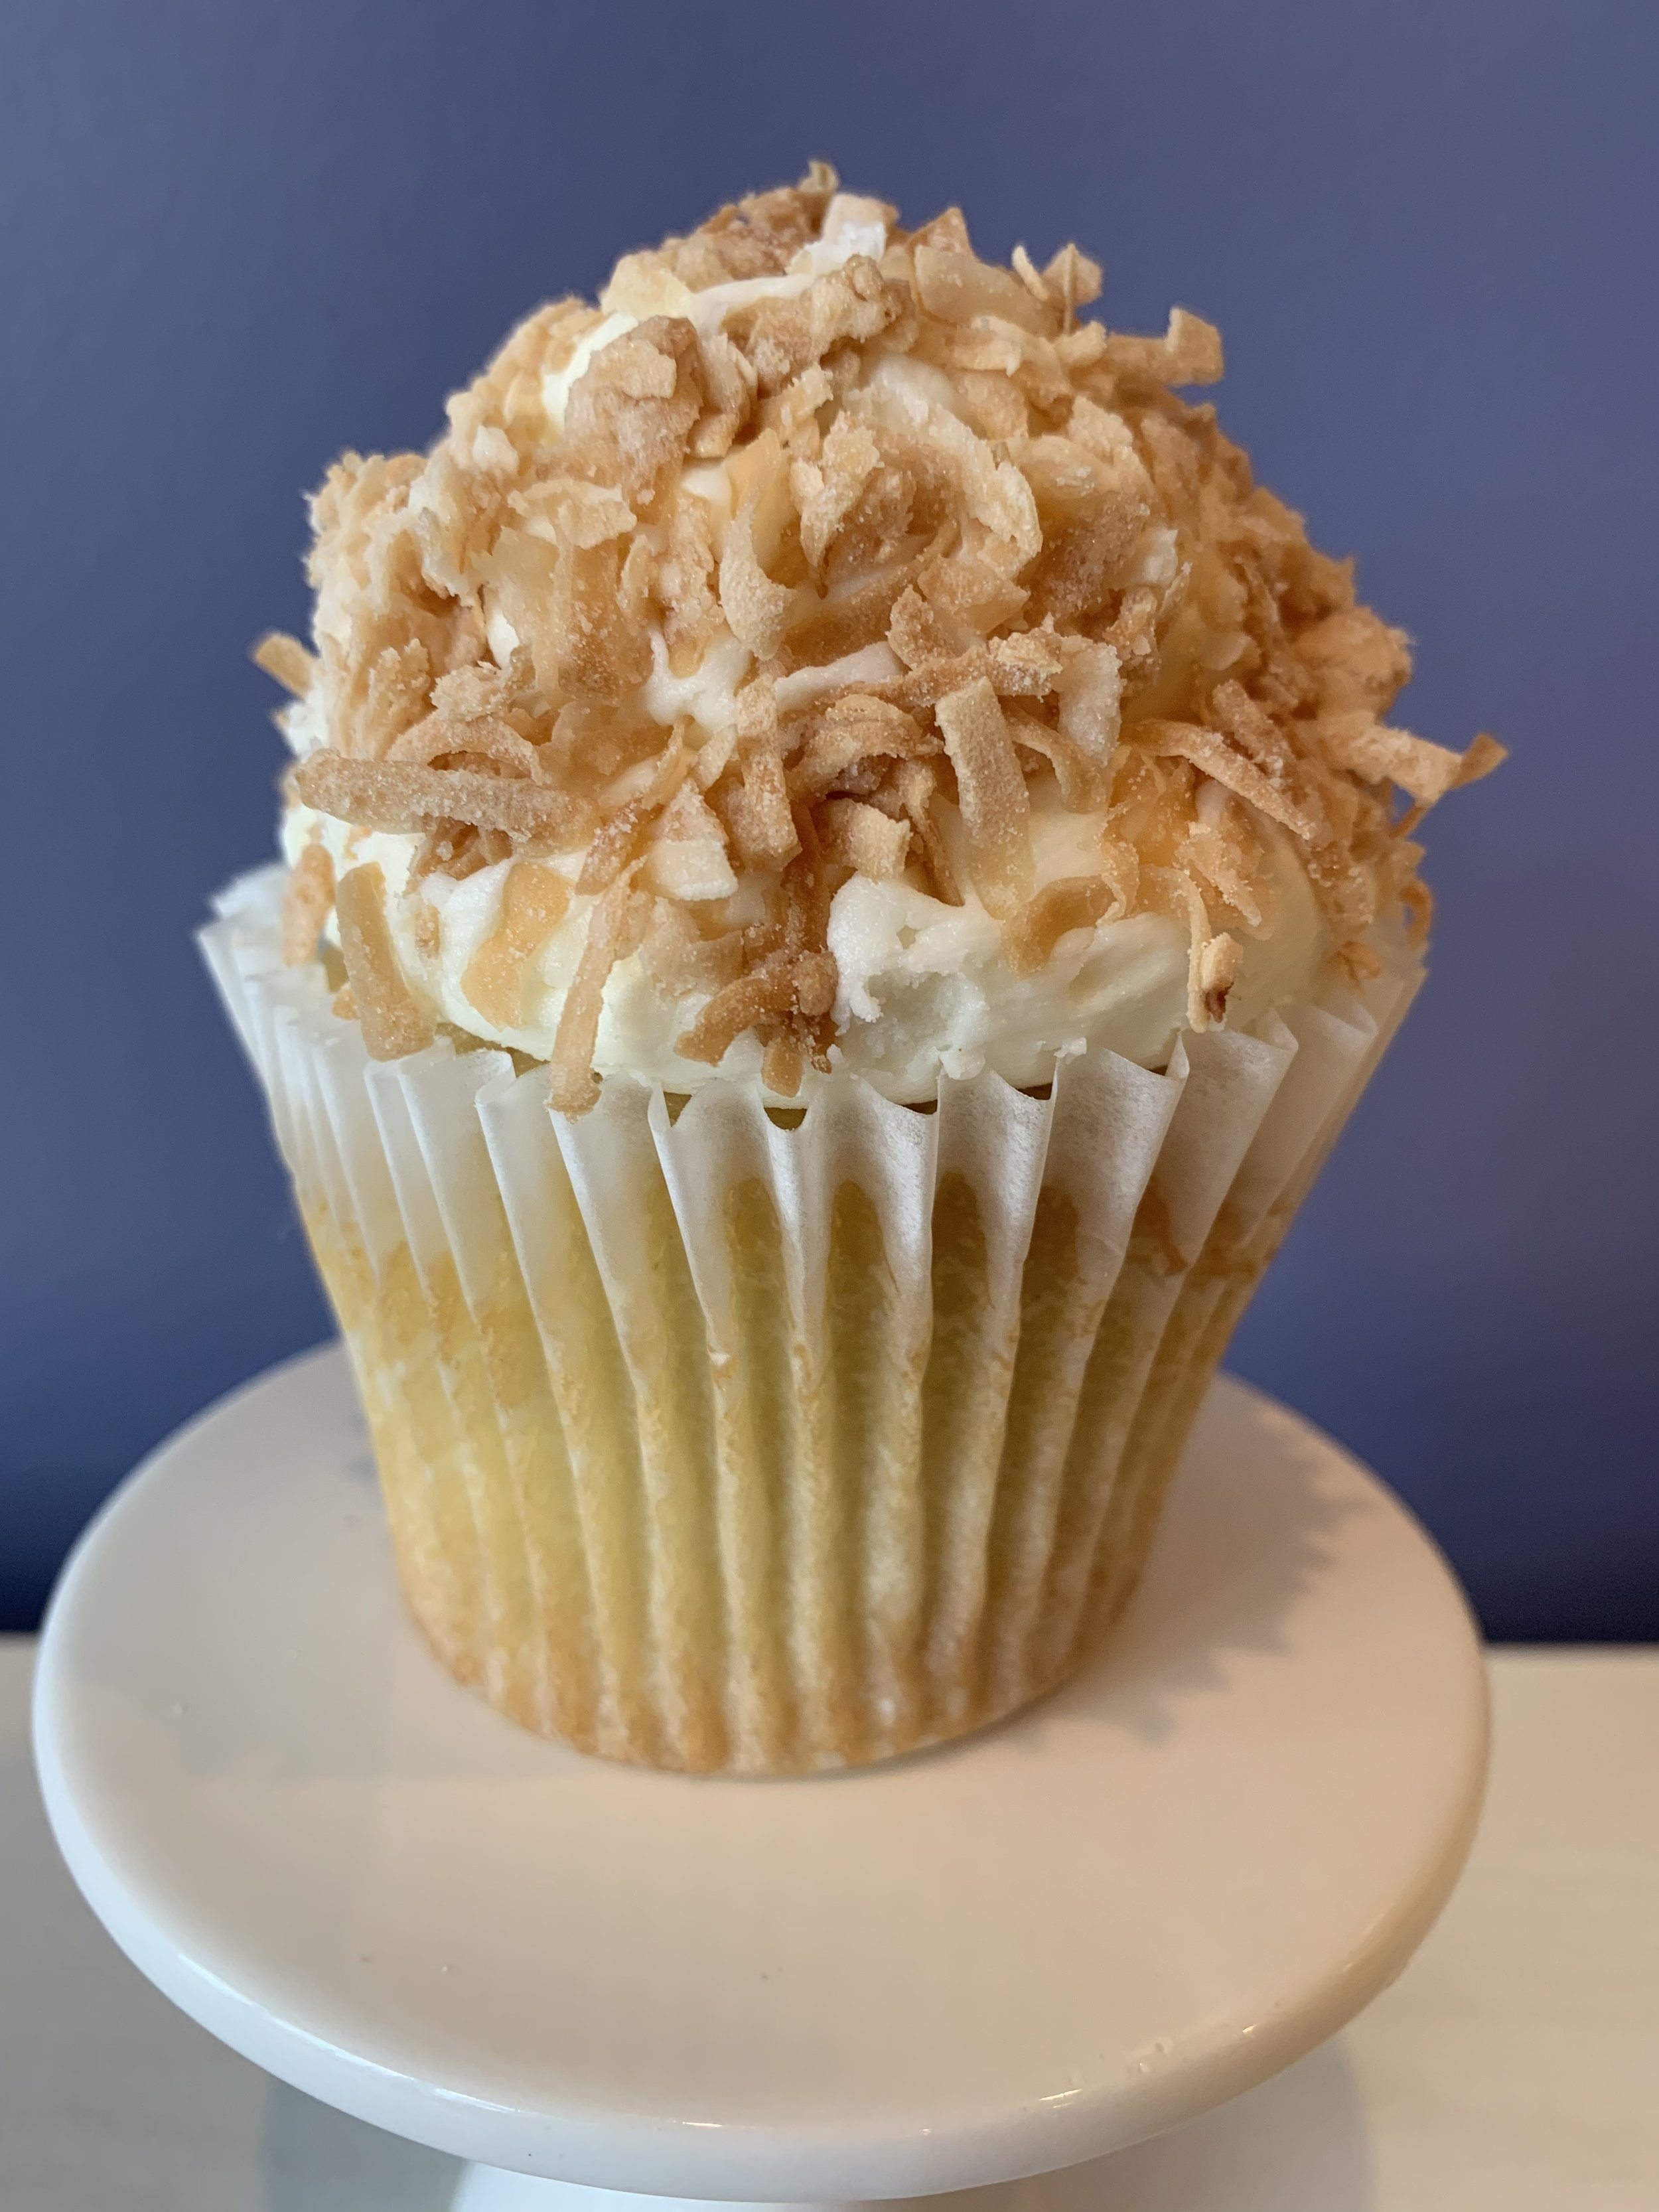 Coconut Cream Pie - Coconut cake filled with vanilla pastry cream topped with coconut buttercream and rolled in toasted coconut.